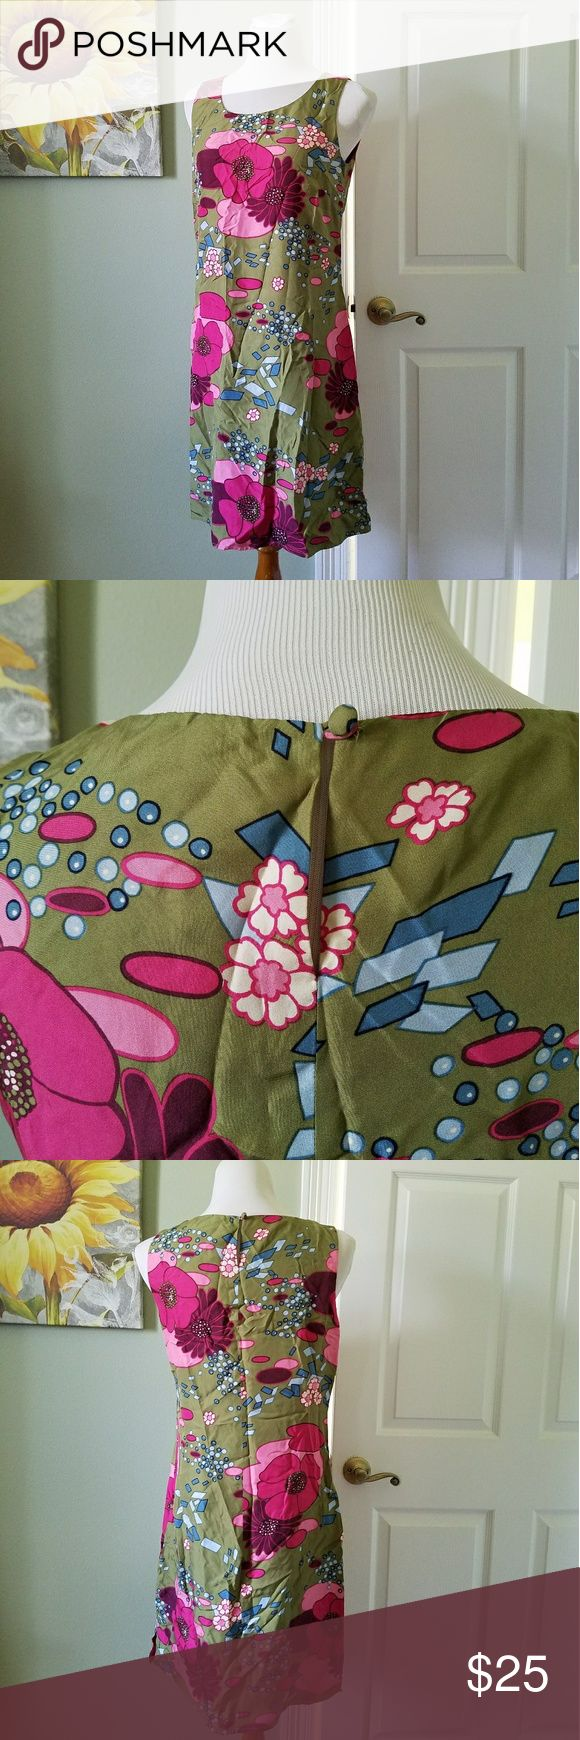 Retro Print 100% Silk Floral Dress 8 Gently worn excellent condition  Just needs an iron or steam to get rid of wrinkles  Silk Button closure on back of neck   BUNDLE your likes and shoot me and OFFER! Glad to Hundreds of items available for discounted bundle offers! august silk Dresses